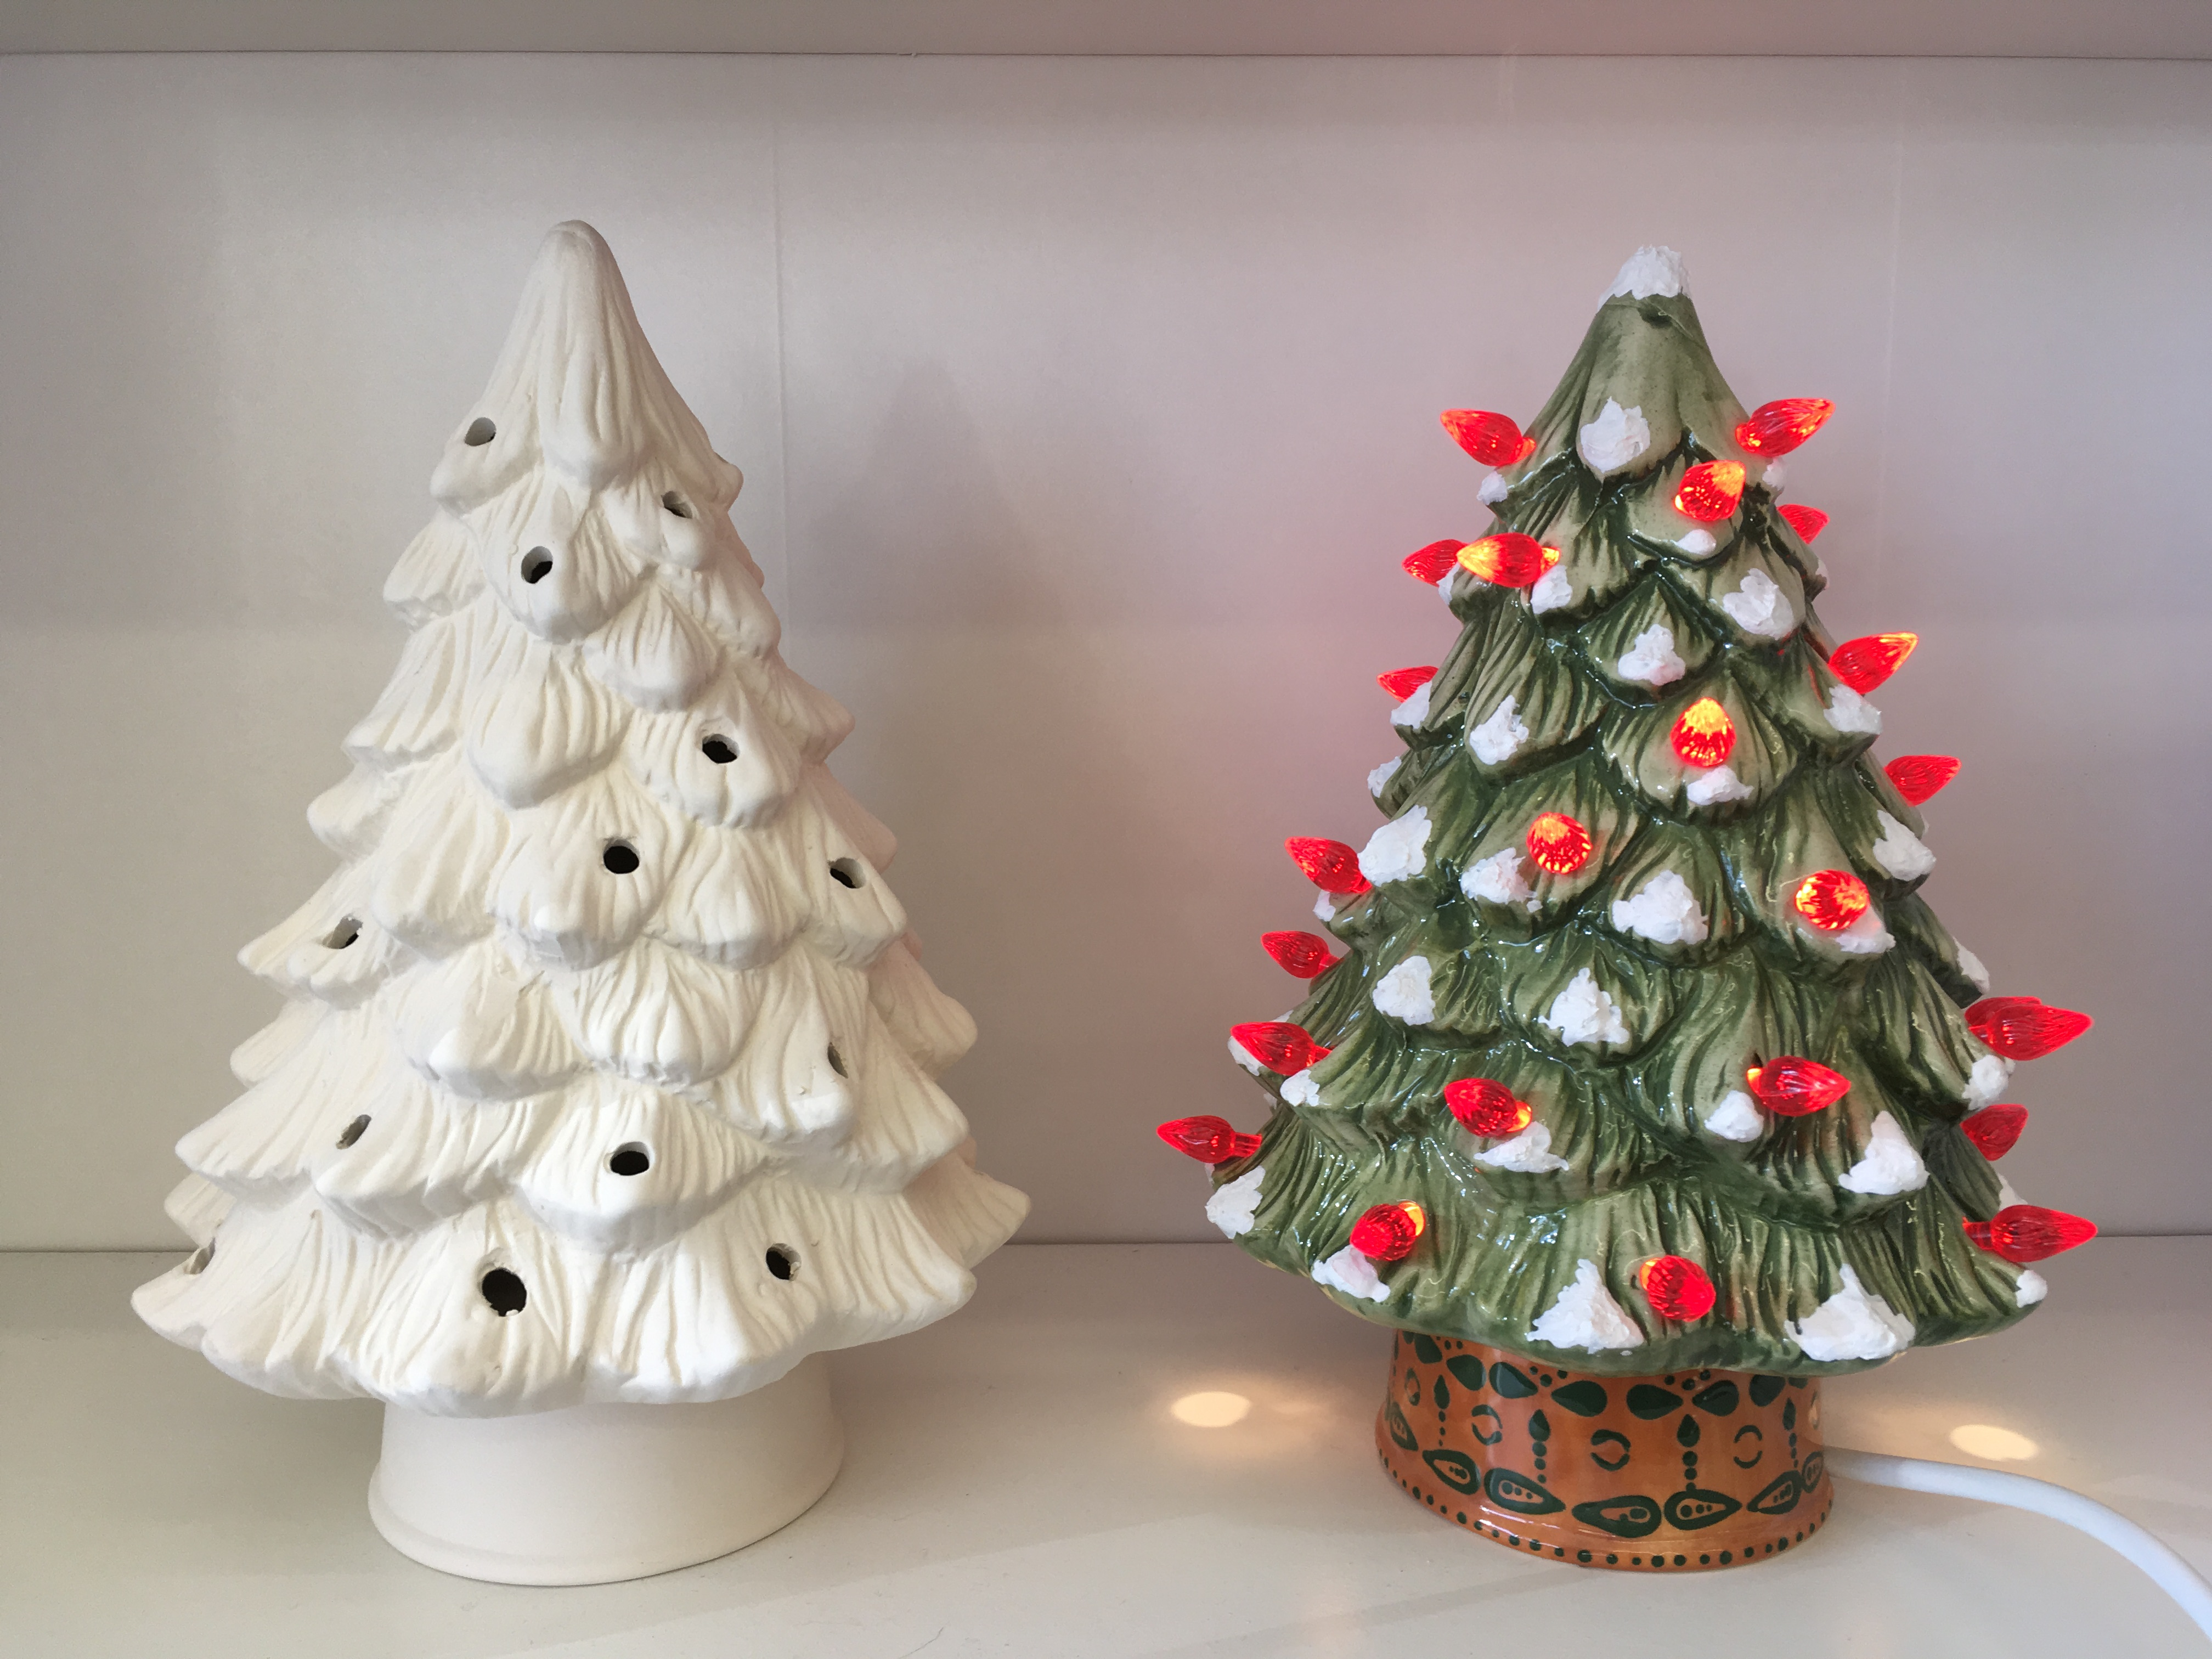 Pottery Christmas Tree lamps